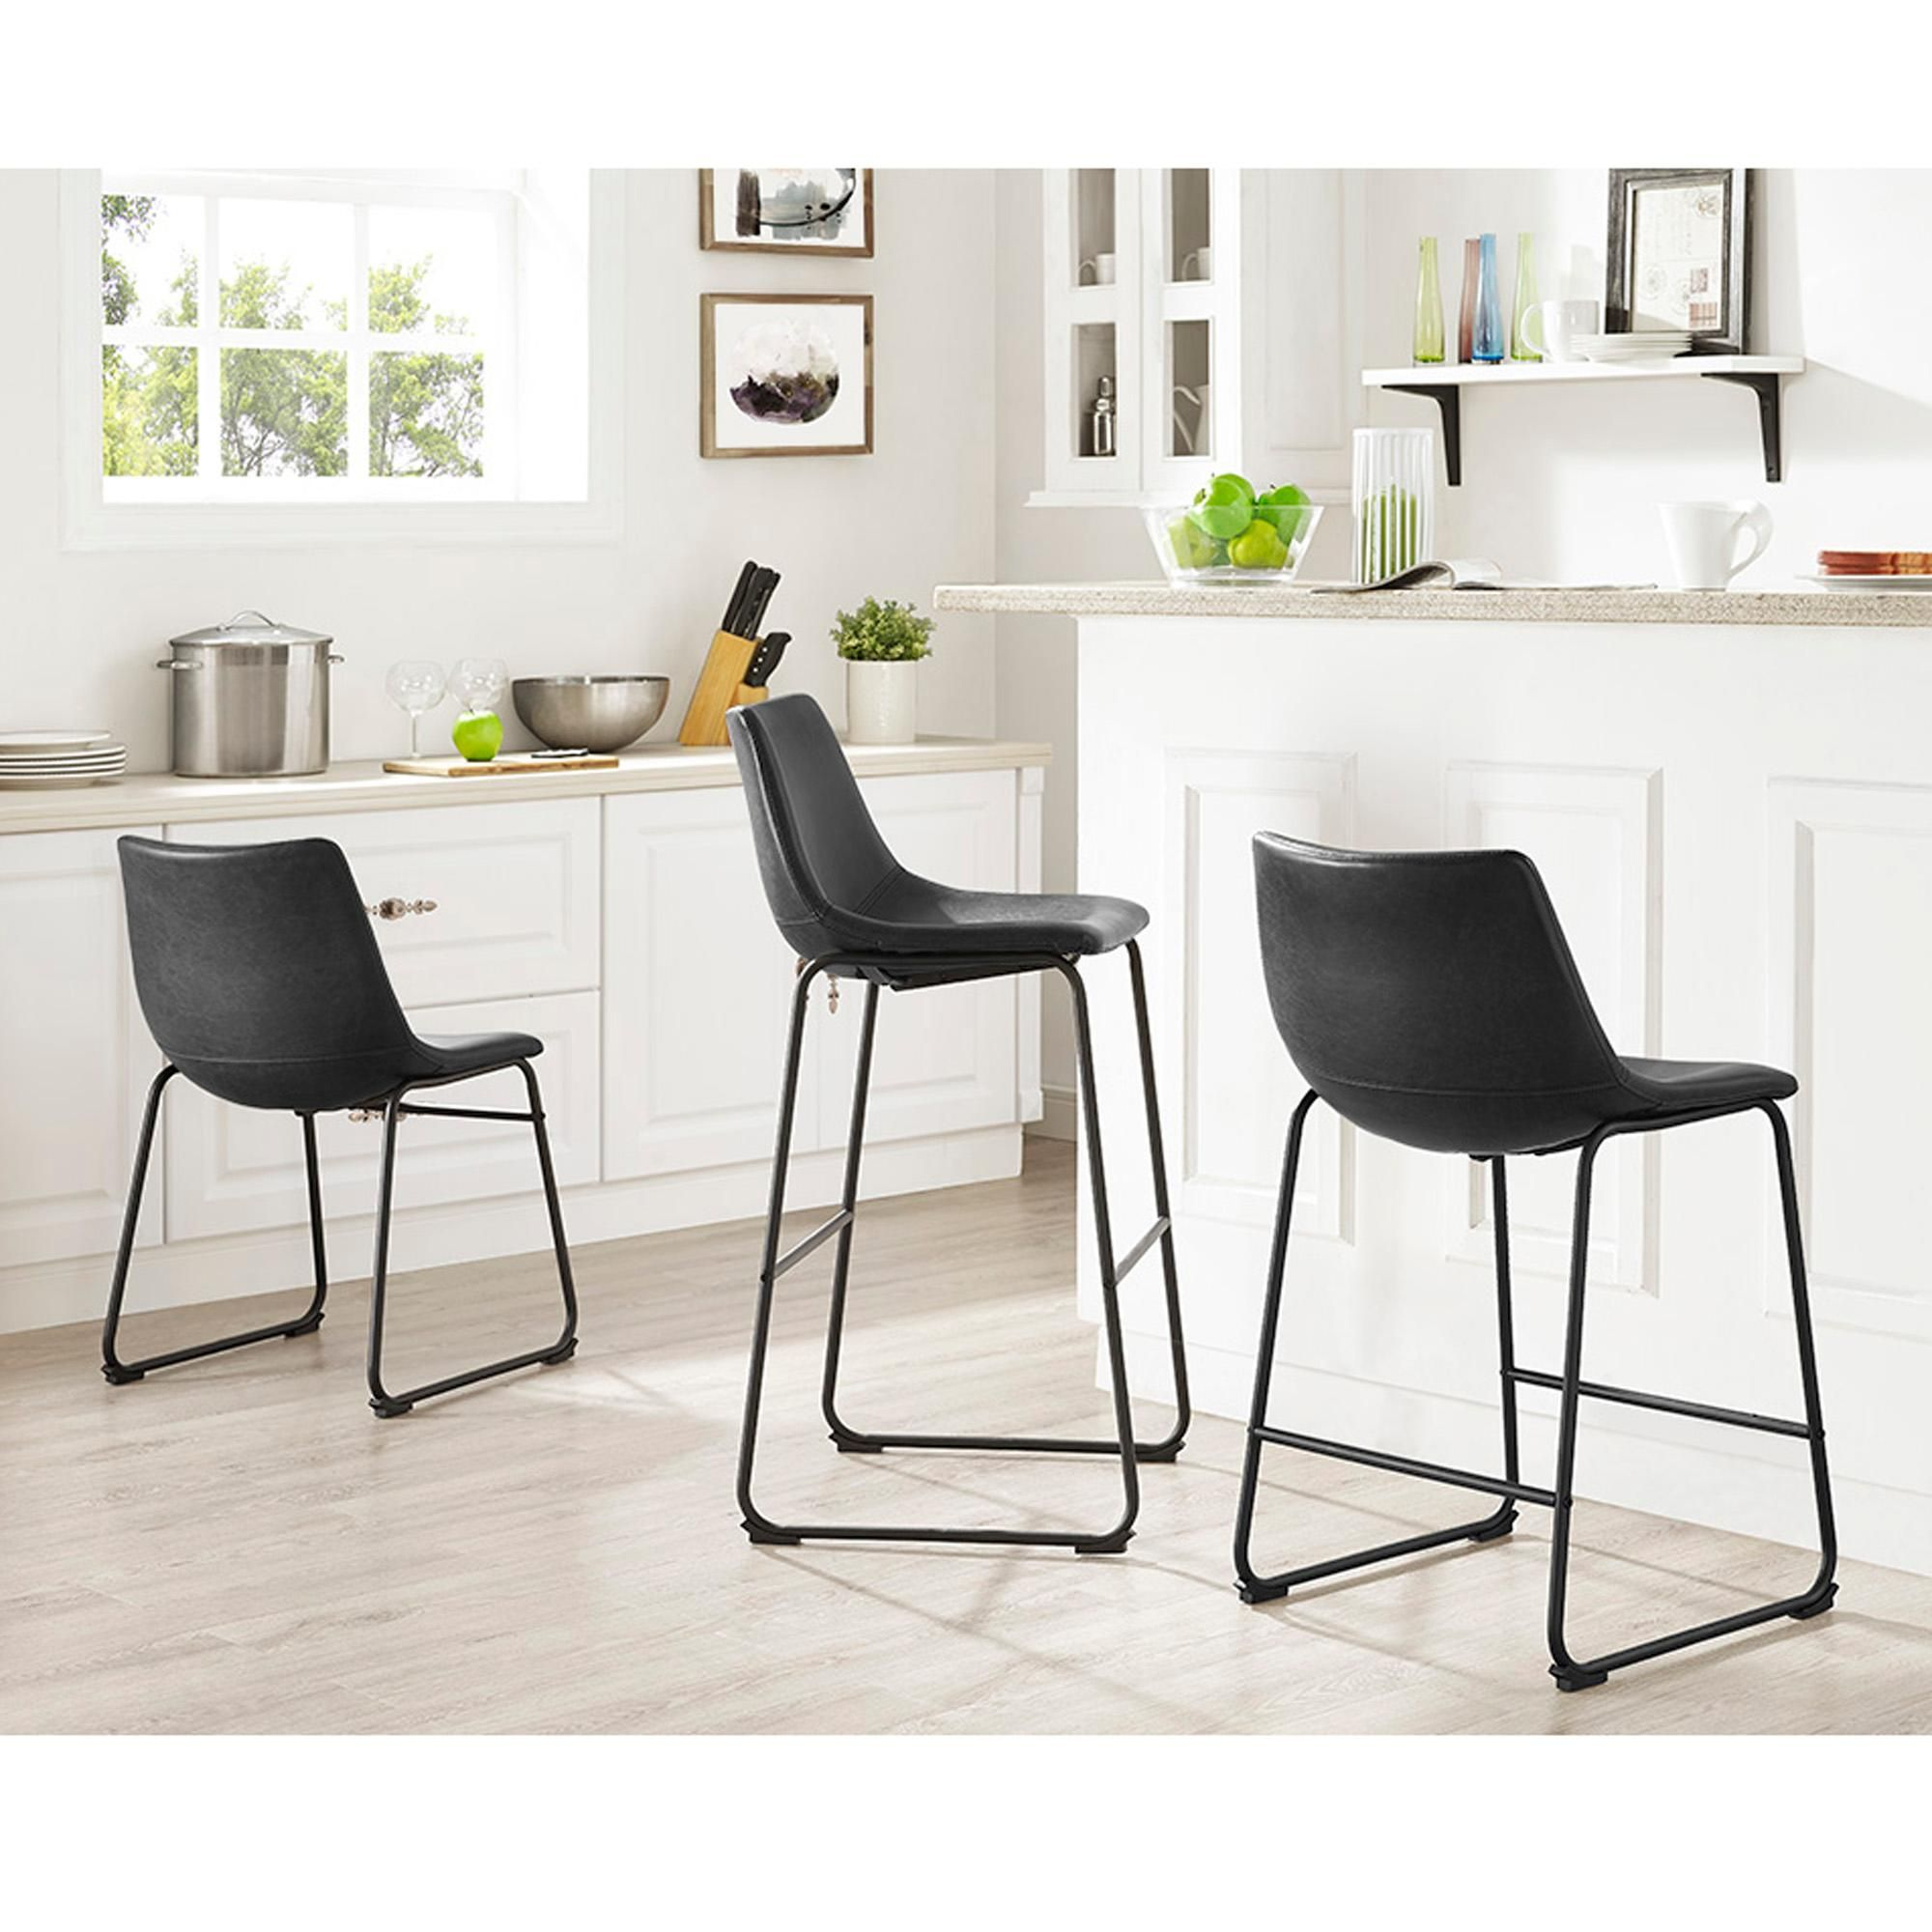 Marvelous Amazon Com We Furniture Black Faux Leather Dining Chairs Pabps2019 Chair Design Images Pabps2019Com